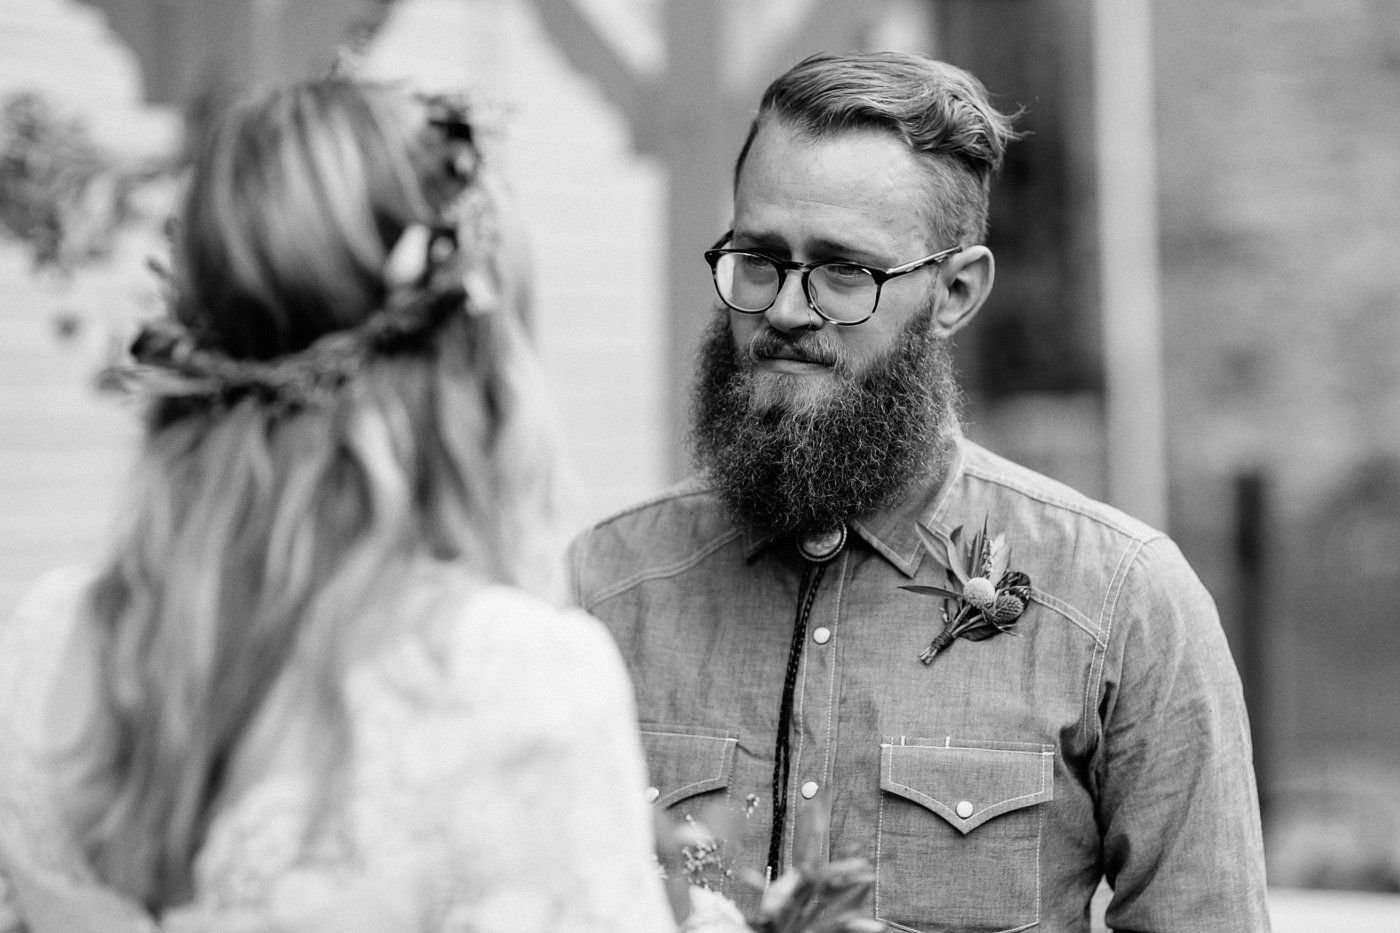 Groom tearing up during vows